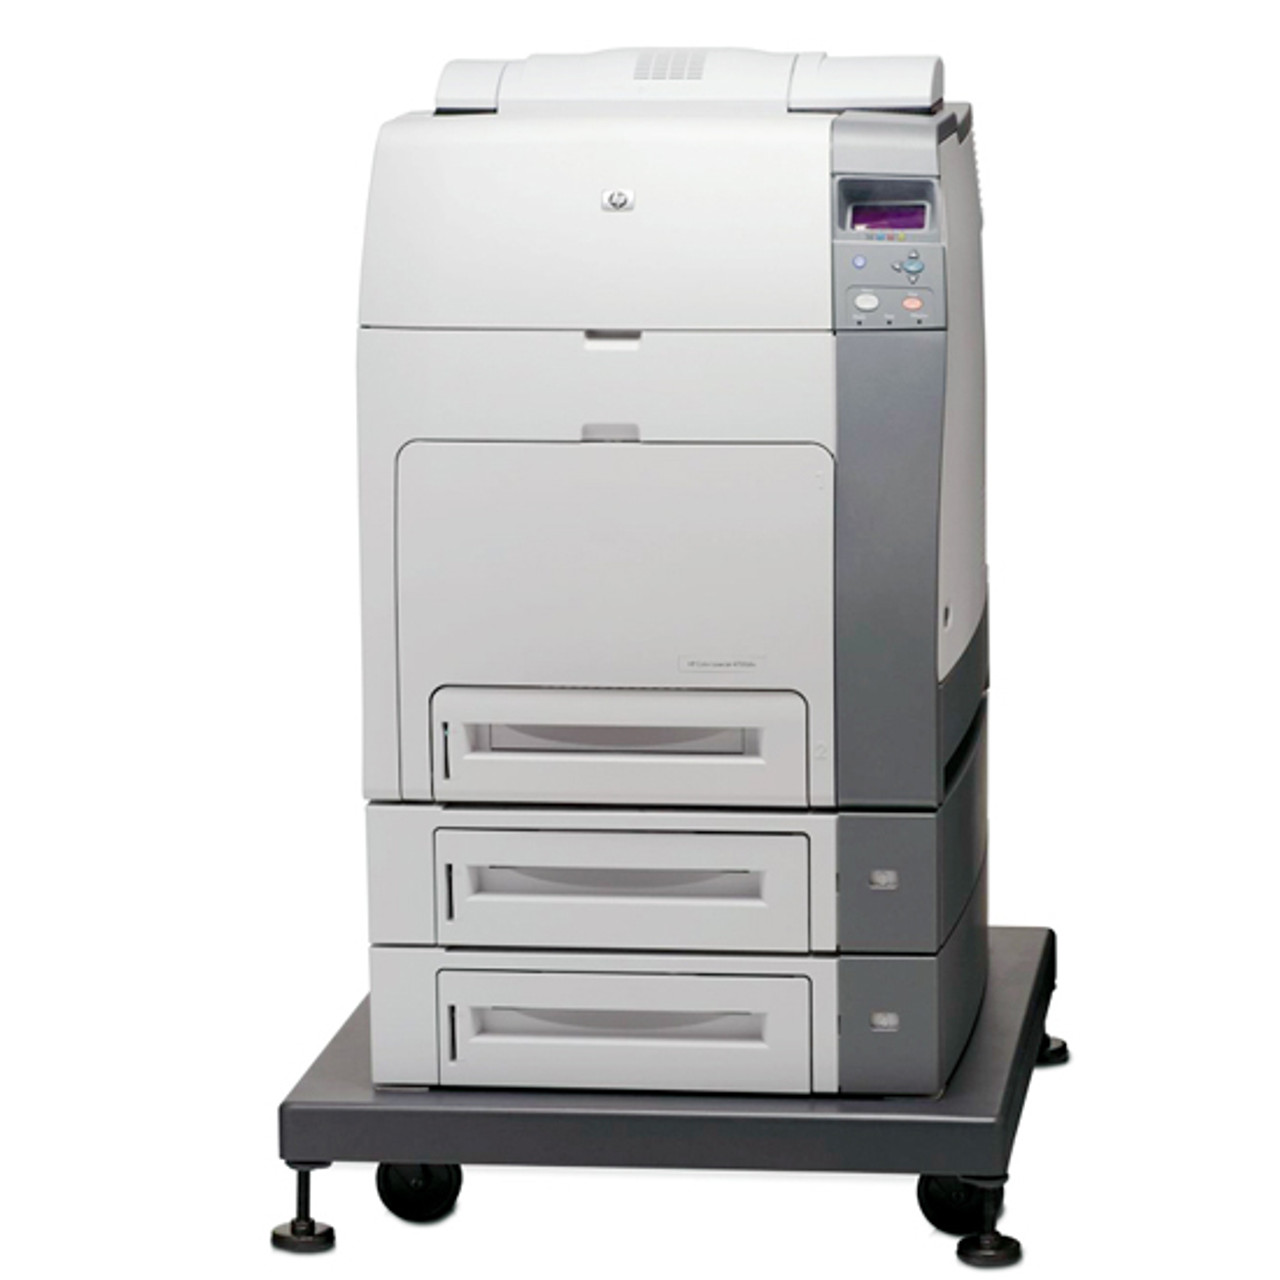 LASERJET 4700 DTN DRIVER DOWNLOAD